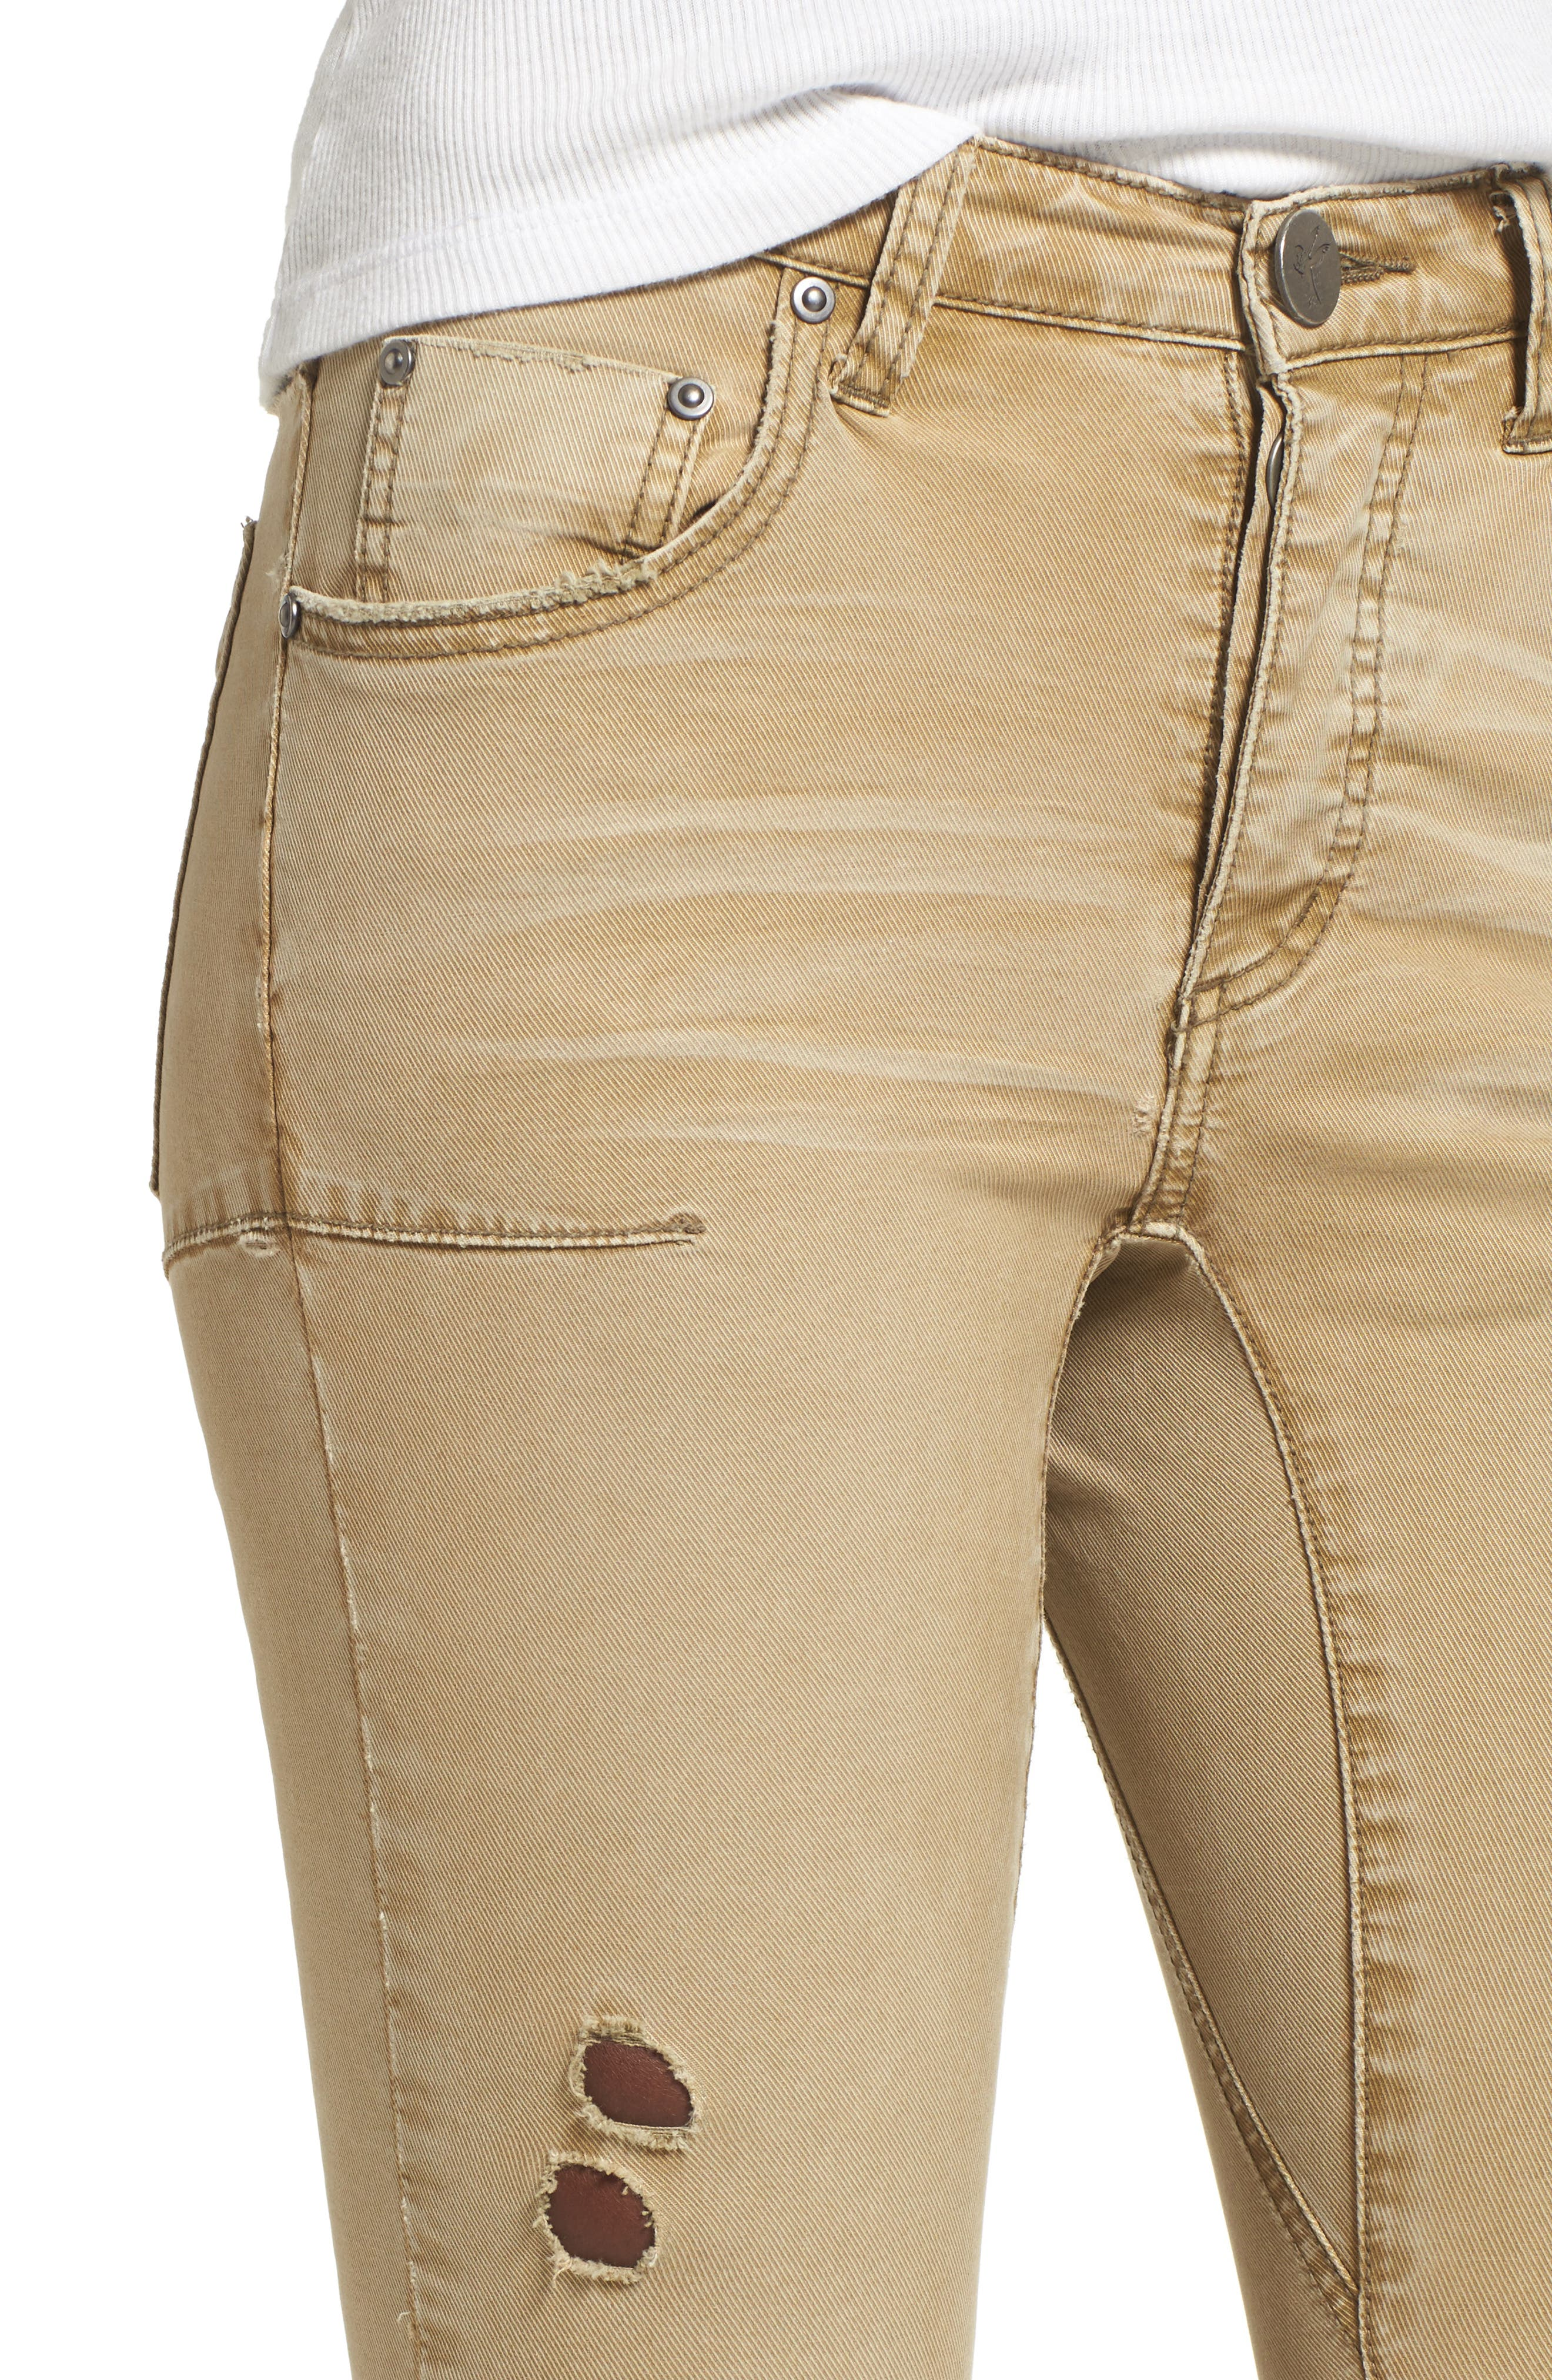 Freebirds Ripped Low Waist Skinny Jeans,                             Alternate thumbnail 4, color,                             250